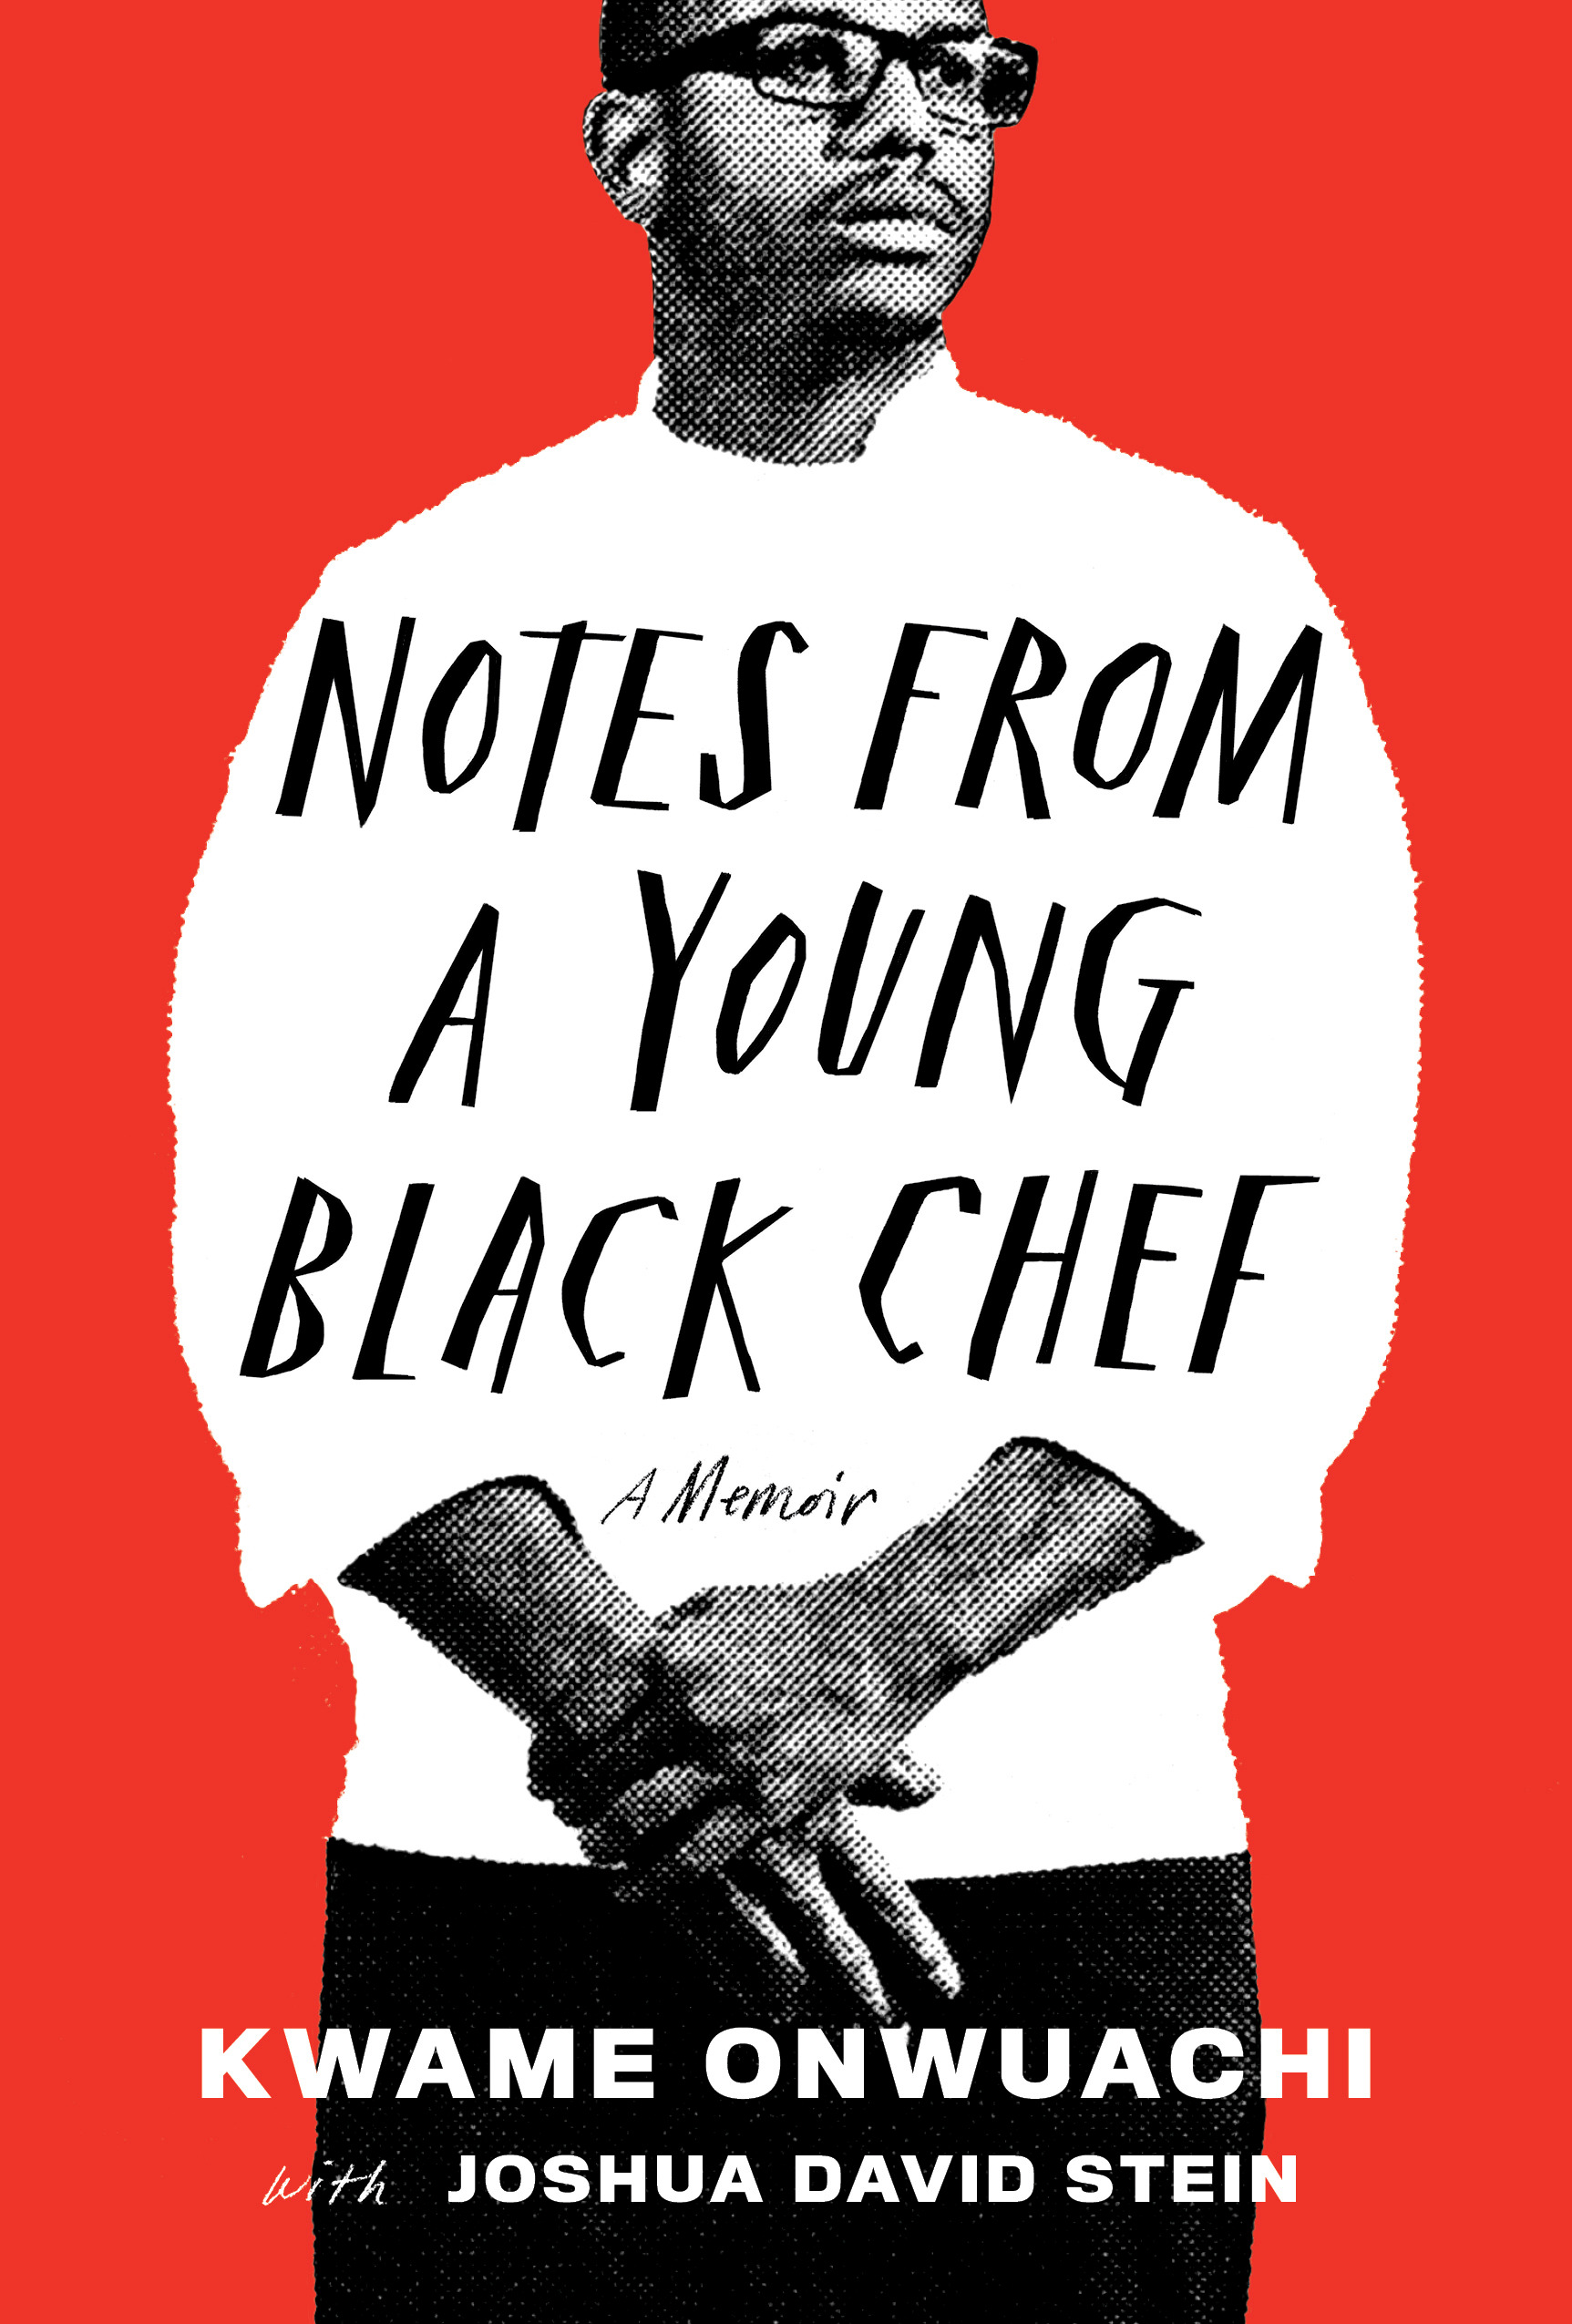 (Chef Kwame Onwuachi's memoir is about as personal as it gets. (Image: Courtesy Knopf)